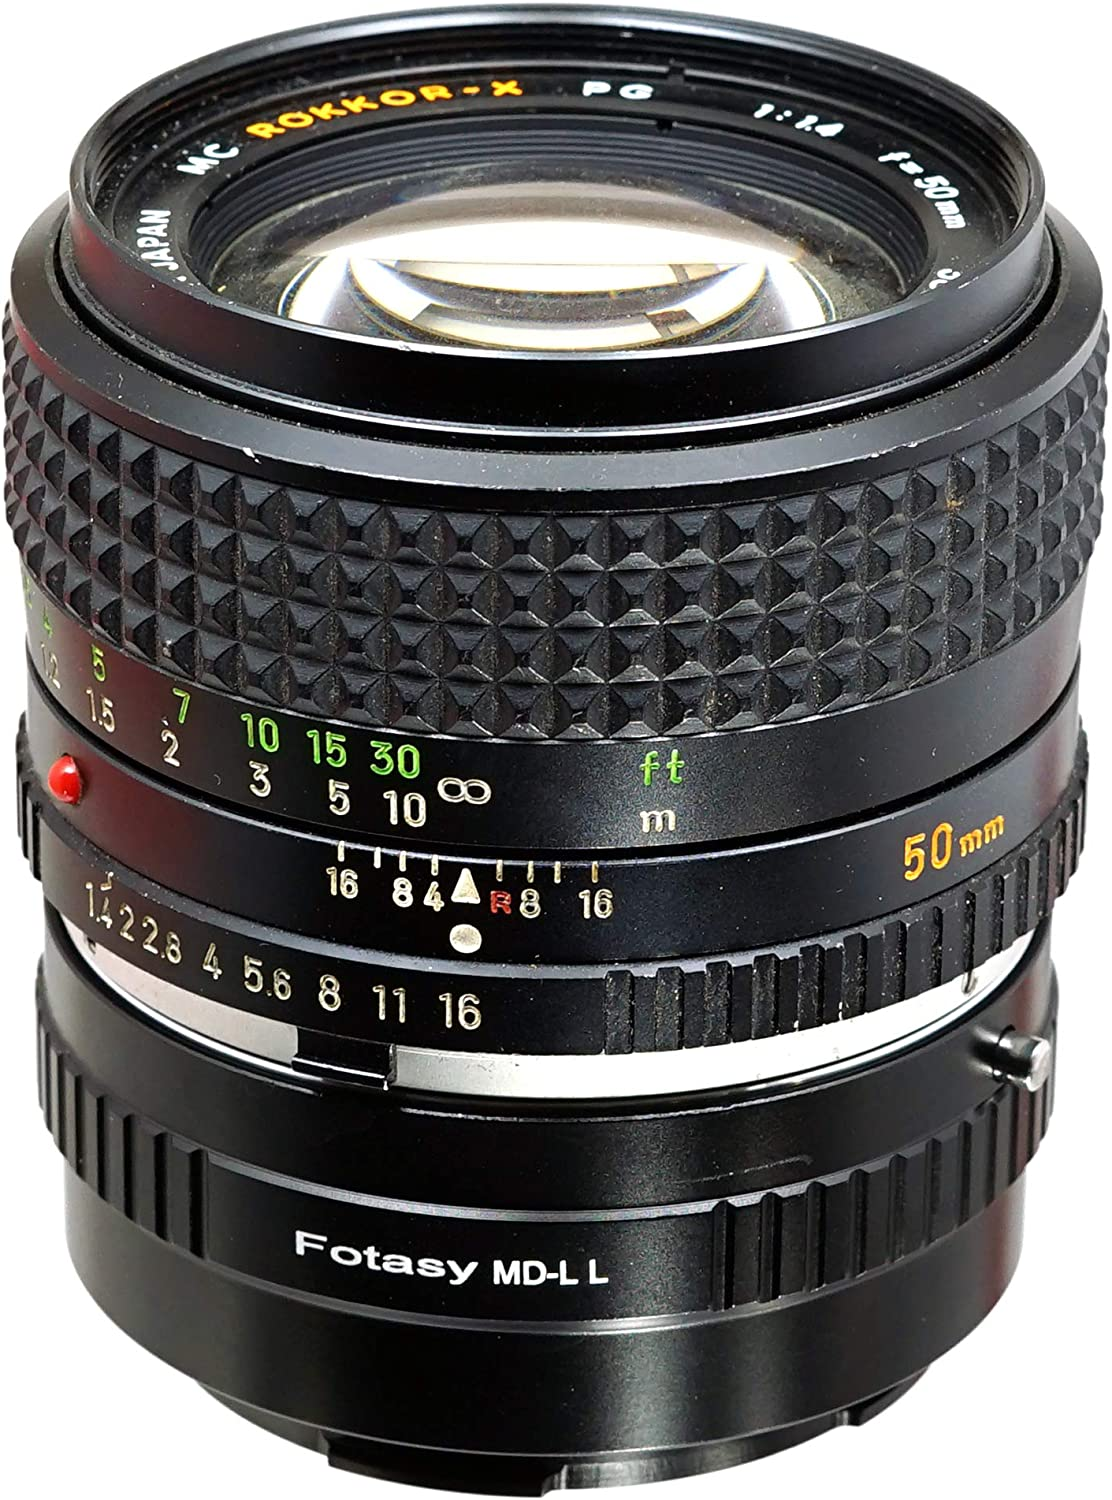 OM Lens to Panasonic S Adapter OM Leica SL Adapter Sigma fp fits Leica SL TL2 TL Leica T /& Panasonic Lumix S1 S1H S1R OM Sigma L OM Leica T Adapter Fotasy Olympus OM Lens to Leica L Adapter